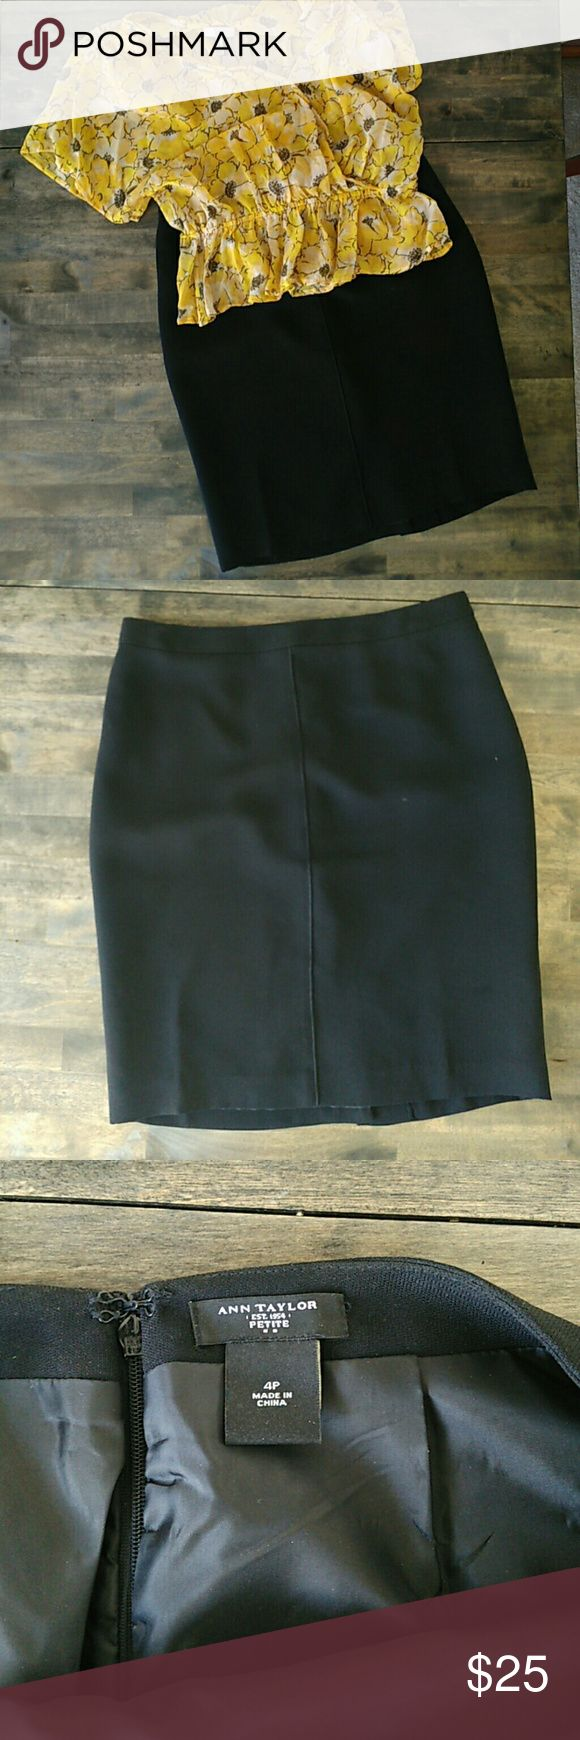 Ann Taylor Petite pencil skirt Black 100% Polyester pencil skirt. Zips in back and has 4 inch slit in back. Skirt is 20.5 inches long, size 4P. Excellent condition. Ann Taylor Skirts Pencil